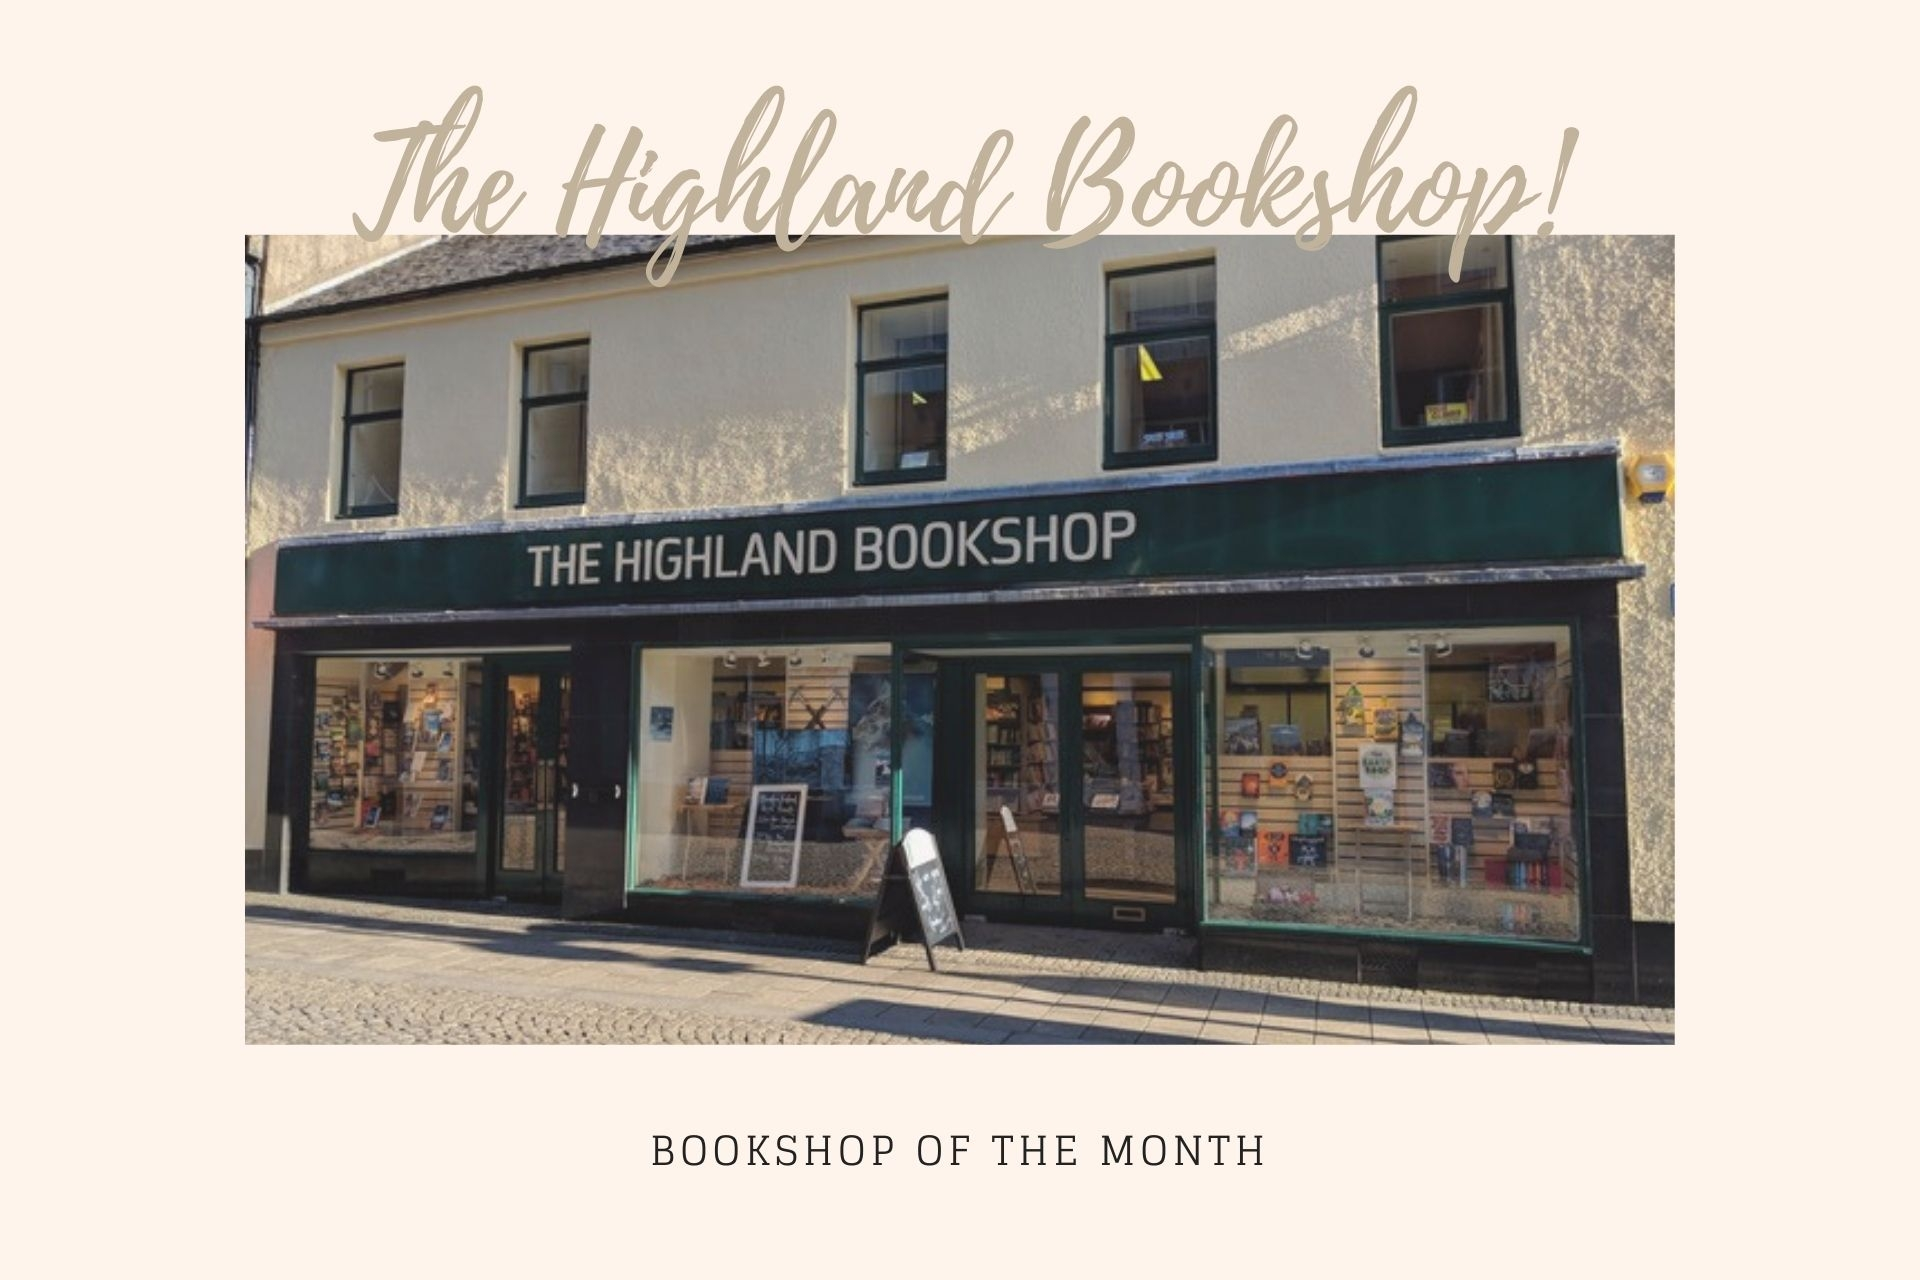 LoveReading Bookshop Feature: The Highland Bookshop (Fort William)